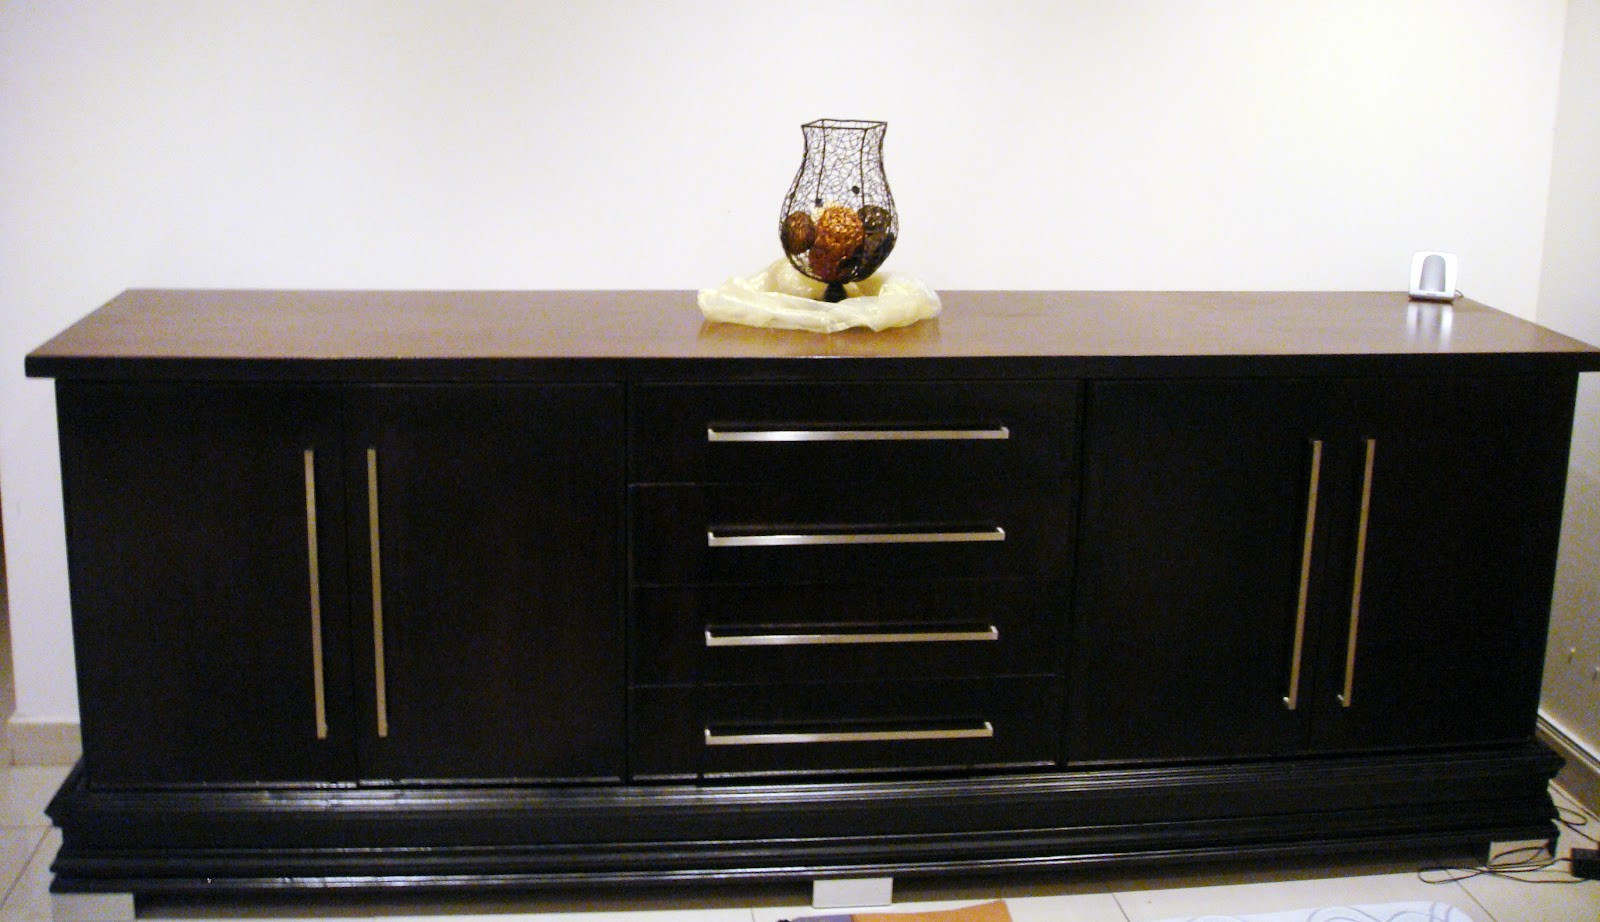 Best ideas about Dining Room Sideboard . Save or Pin Custom Carpentry Dining Room Sideboard Now.